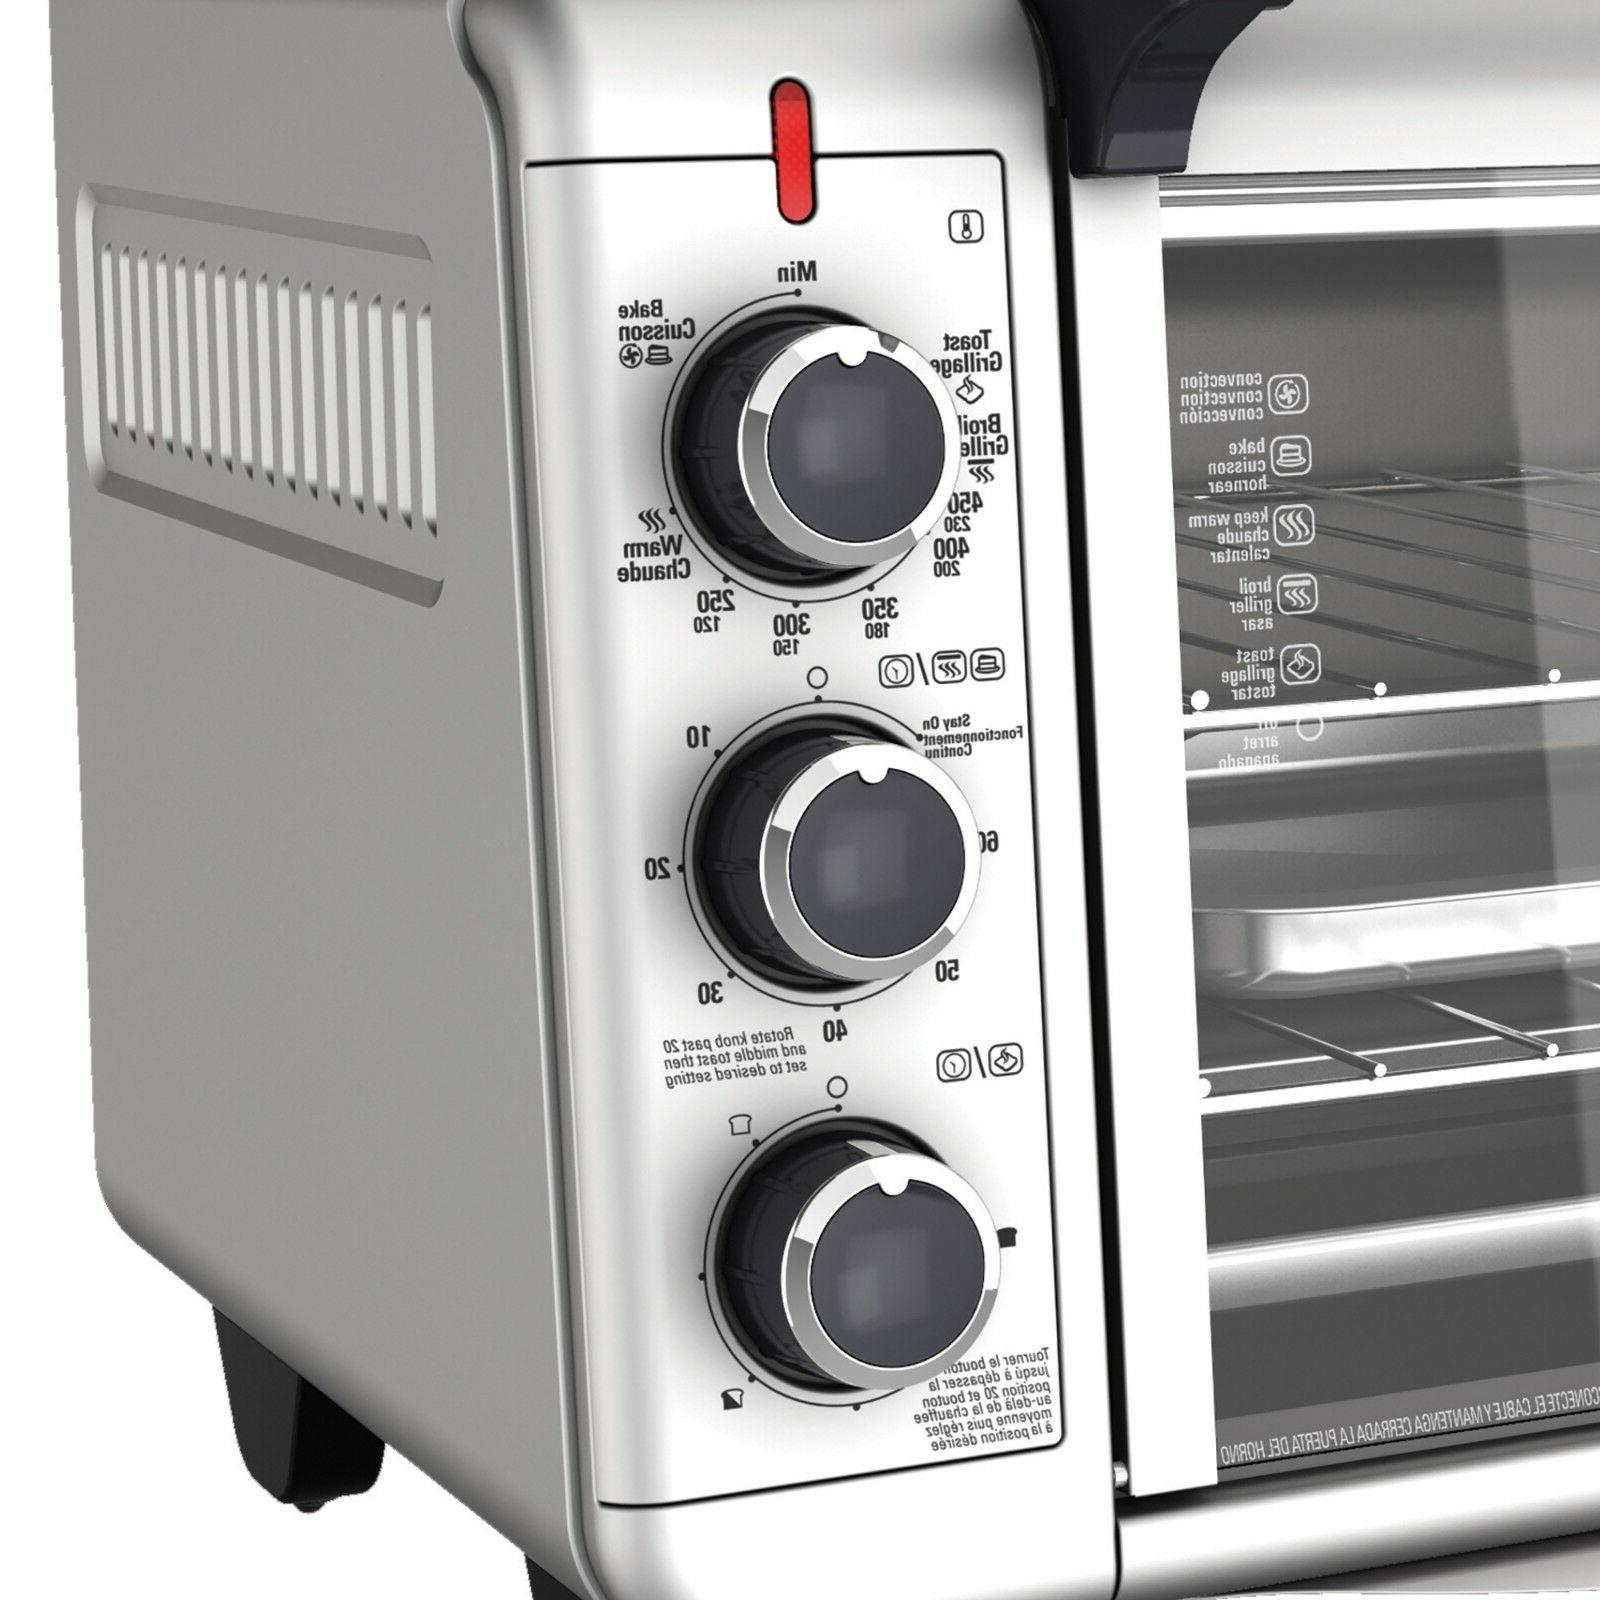 CONVECTION OVEN Pizza Toaster Stainless Steel Broiling